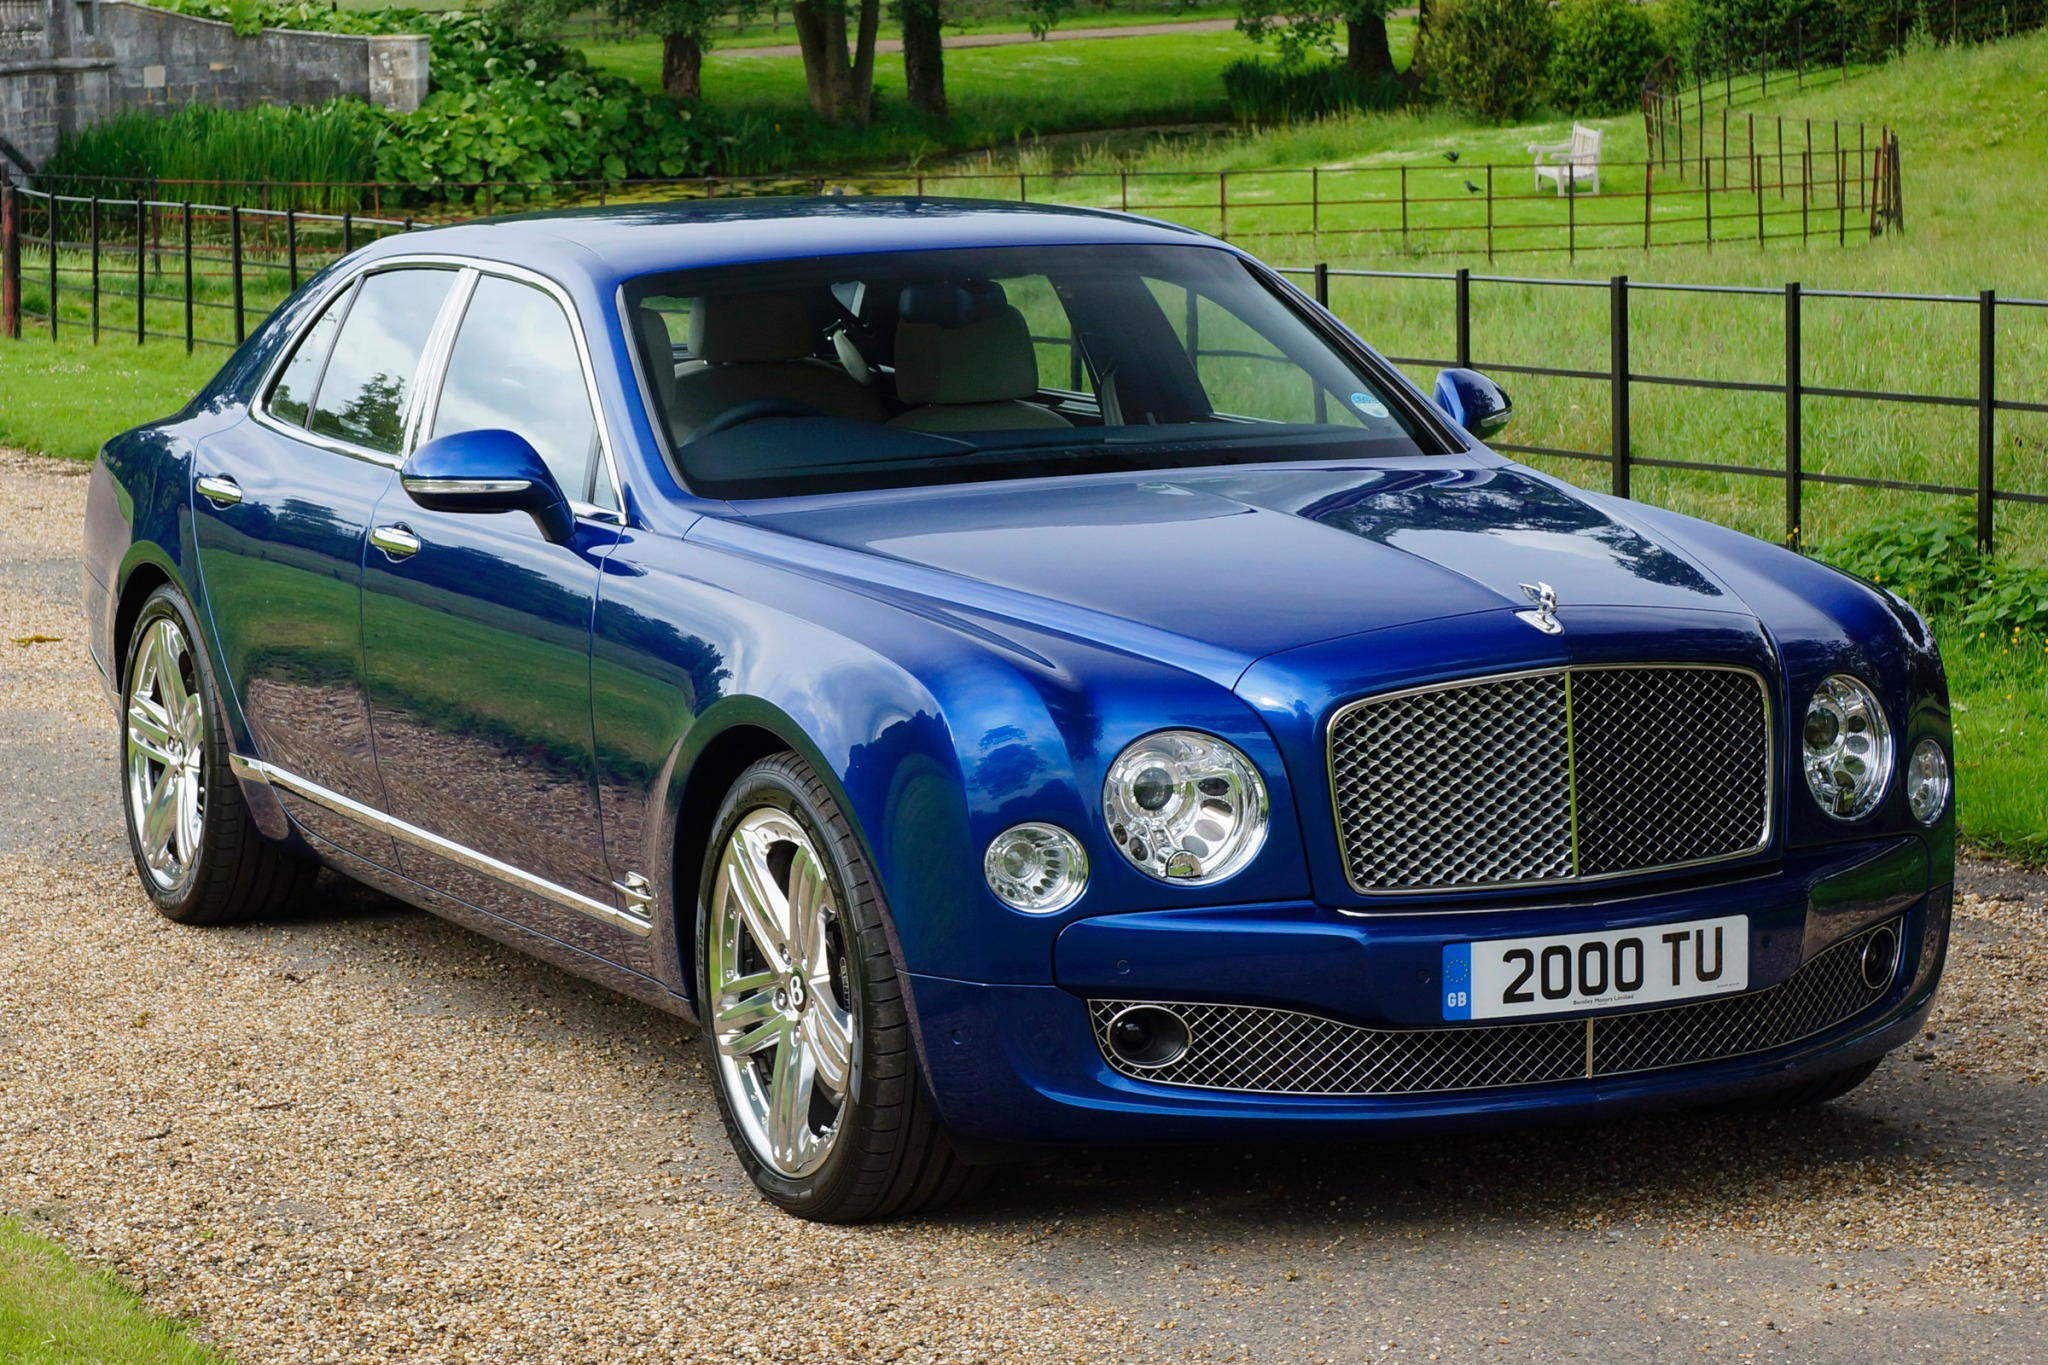 2013 Bentley Mulsanne Sed interior #1